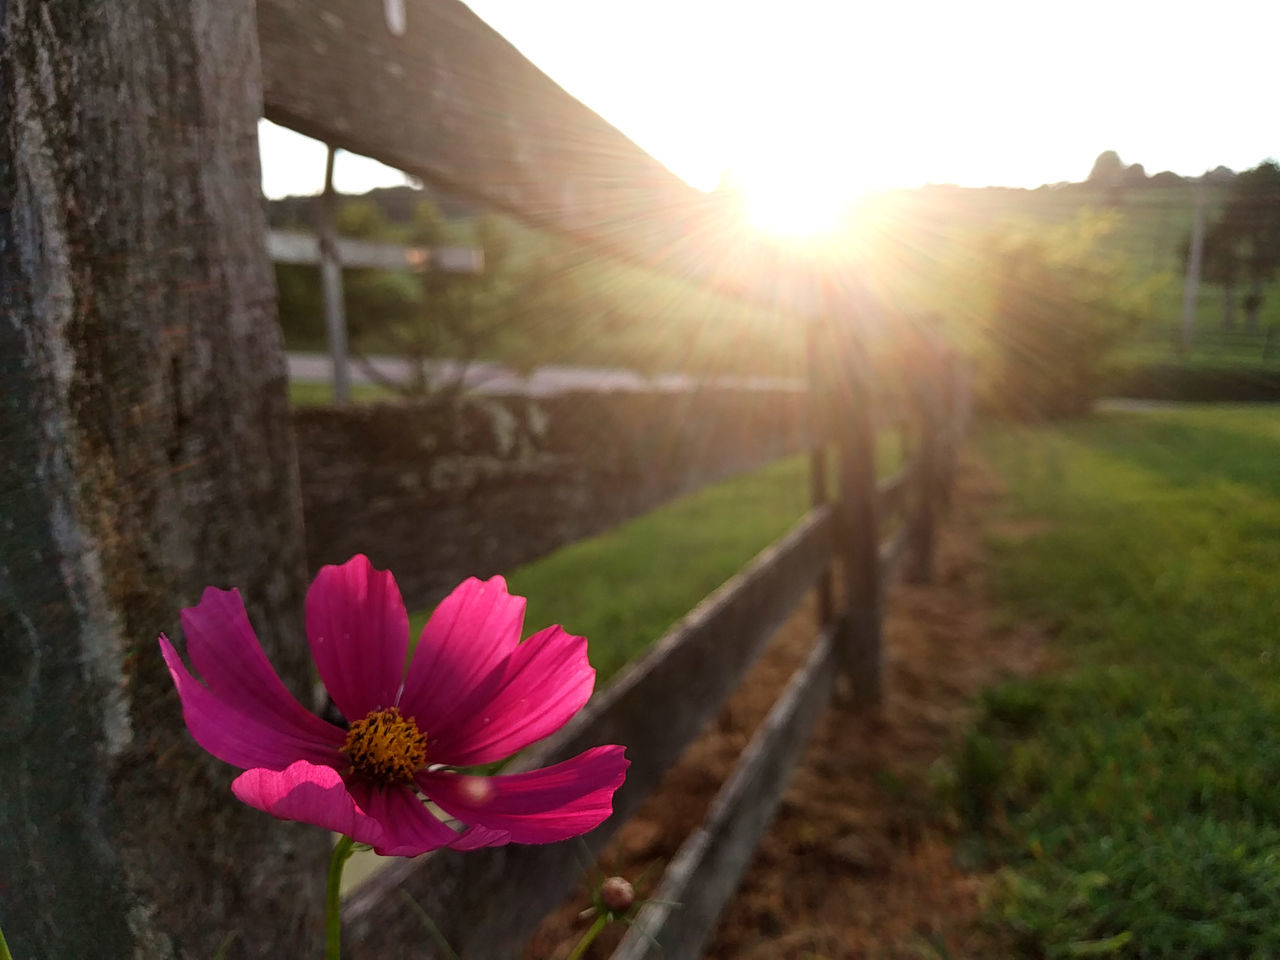 Country Cham TakeoverContrast Backlit Beauty In Nature Blossom Bright Close-up Day Fence Flower Flower Head Focus Focus On Foreground Fragility Freshness Growth In Bloom Lens Flare Nature Outdoors Petal Pink Springtime Sun Sunbeam Sunlight